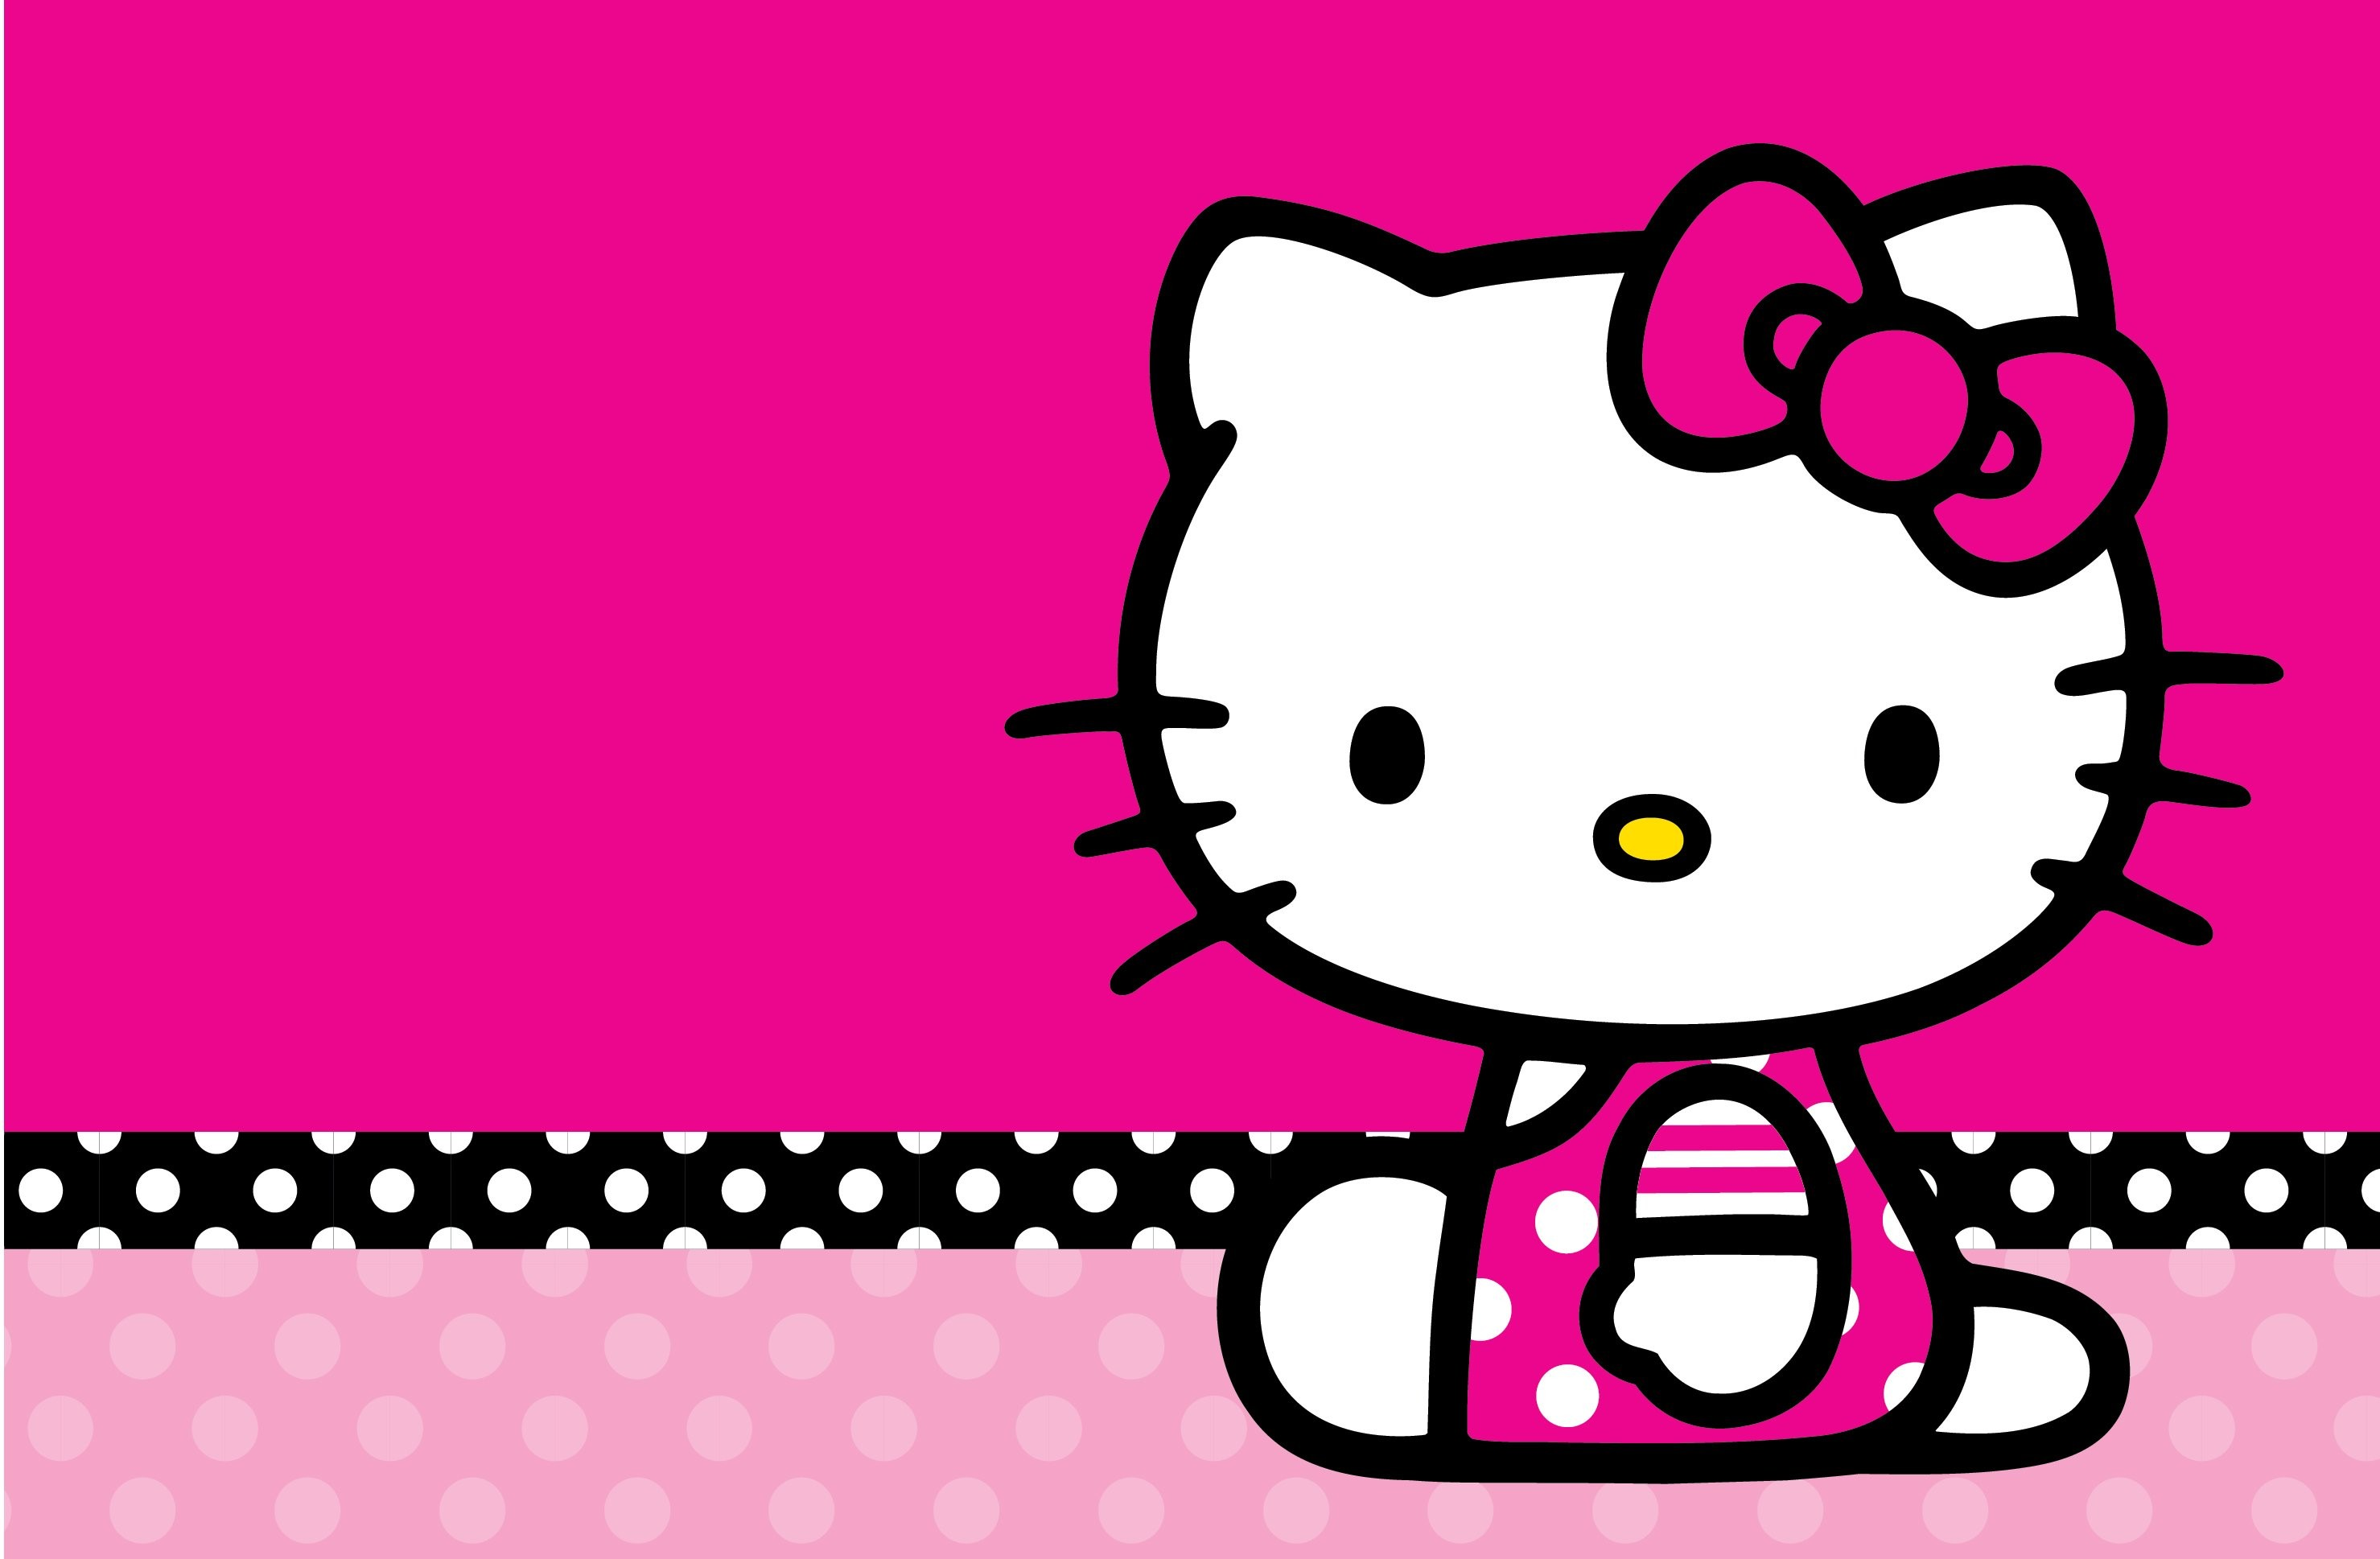 30 307483 hello kitty images wallpapers src new hello kitty